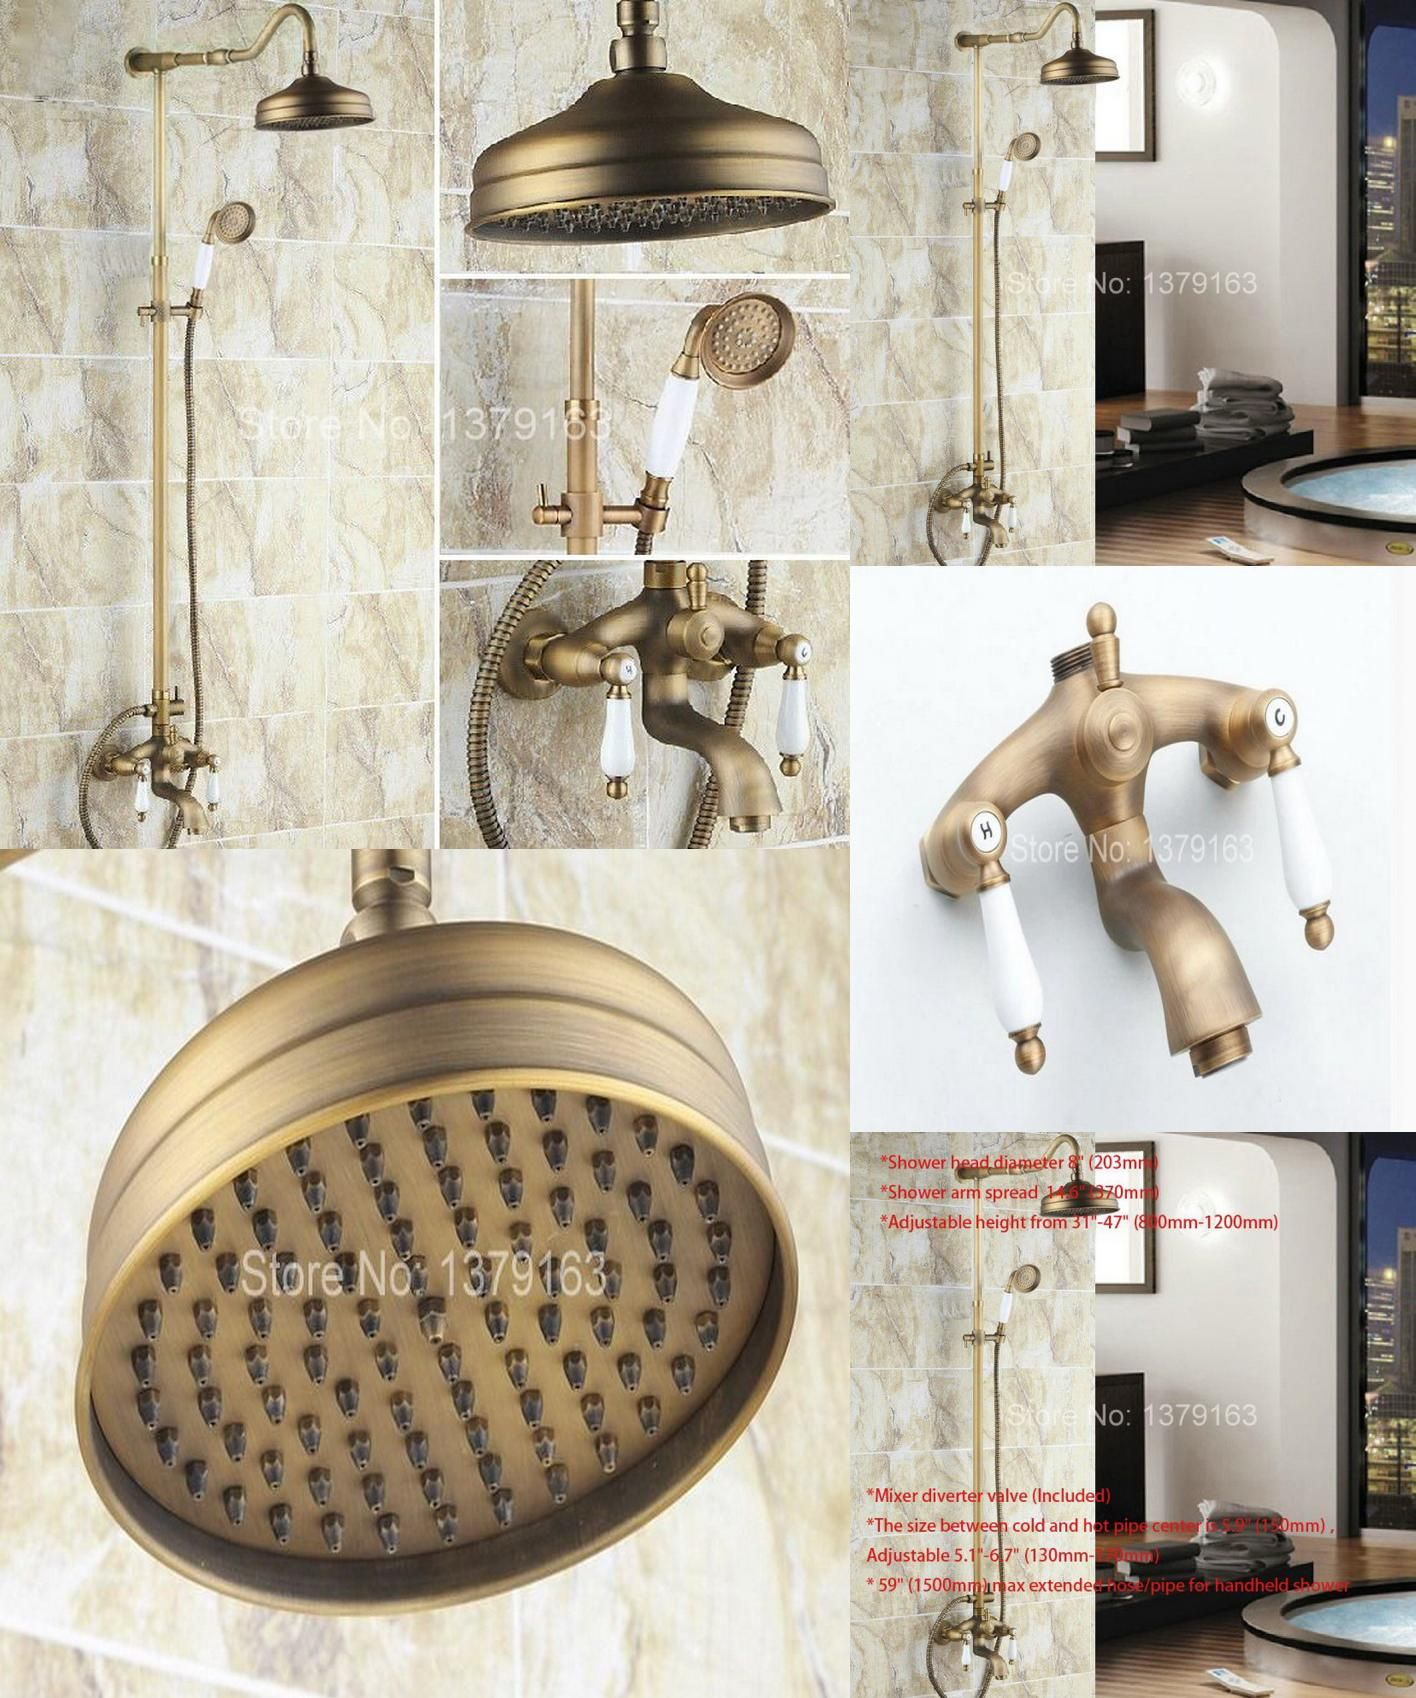 Visit to Buy] Luxury Bathroom Rain Shower Faucet Set Antique Brass ...